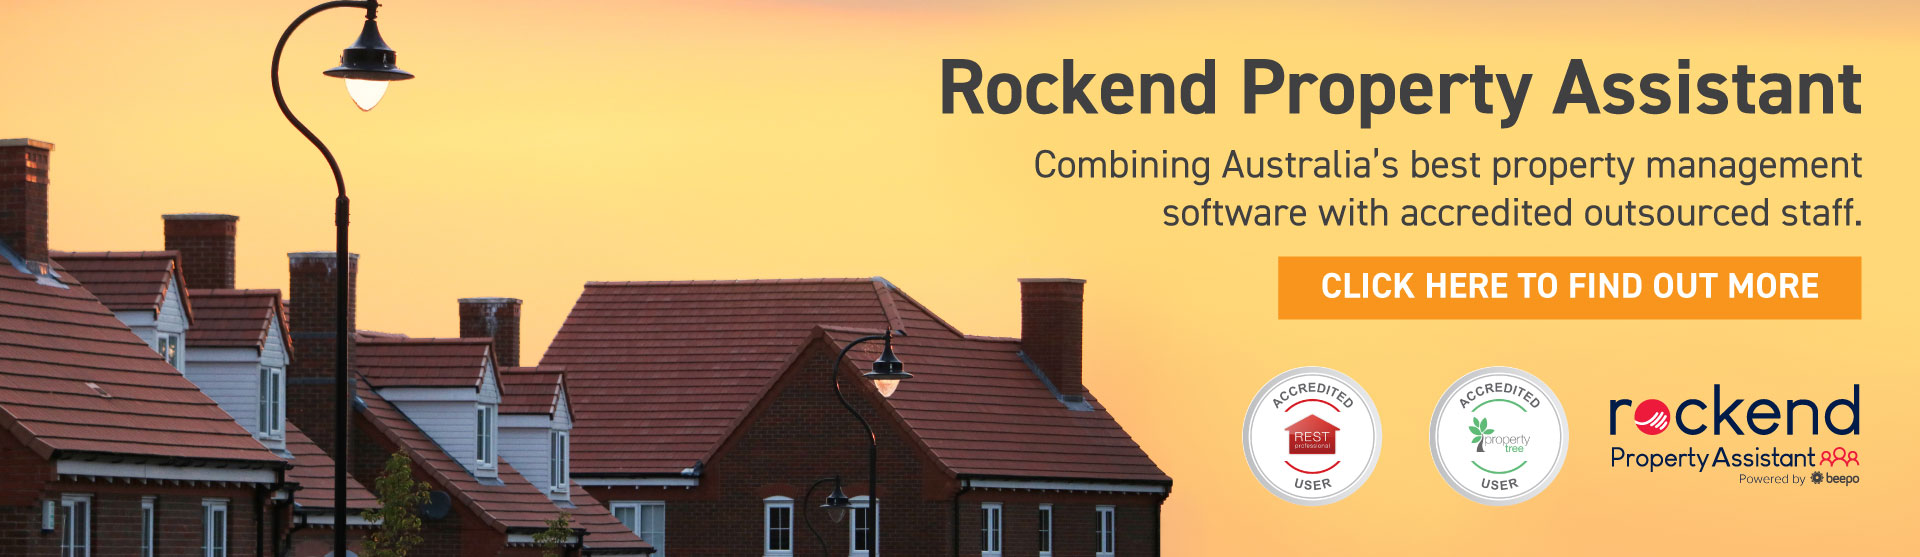 Rockend Property Assistant